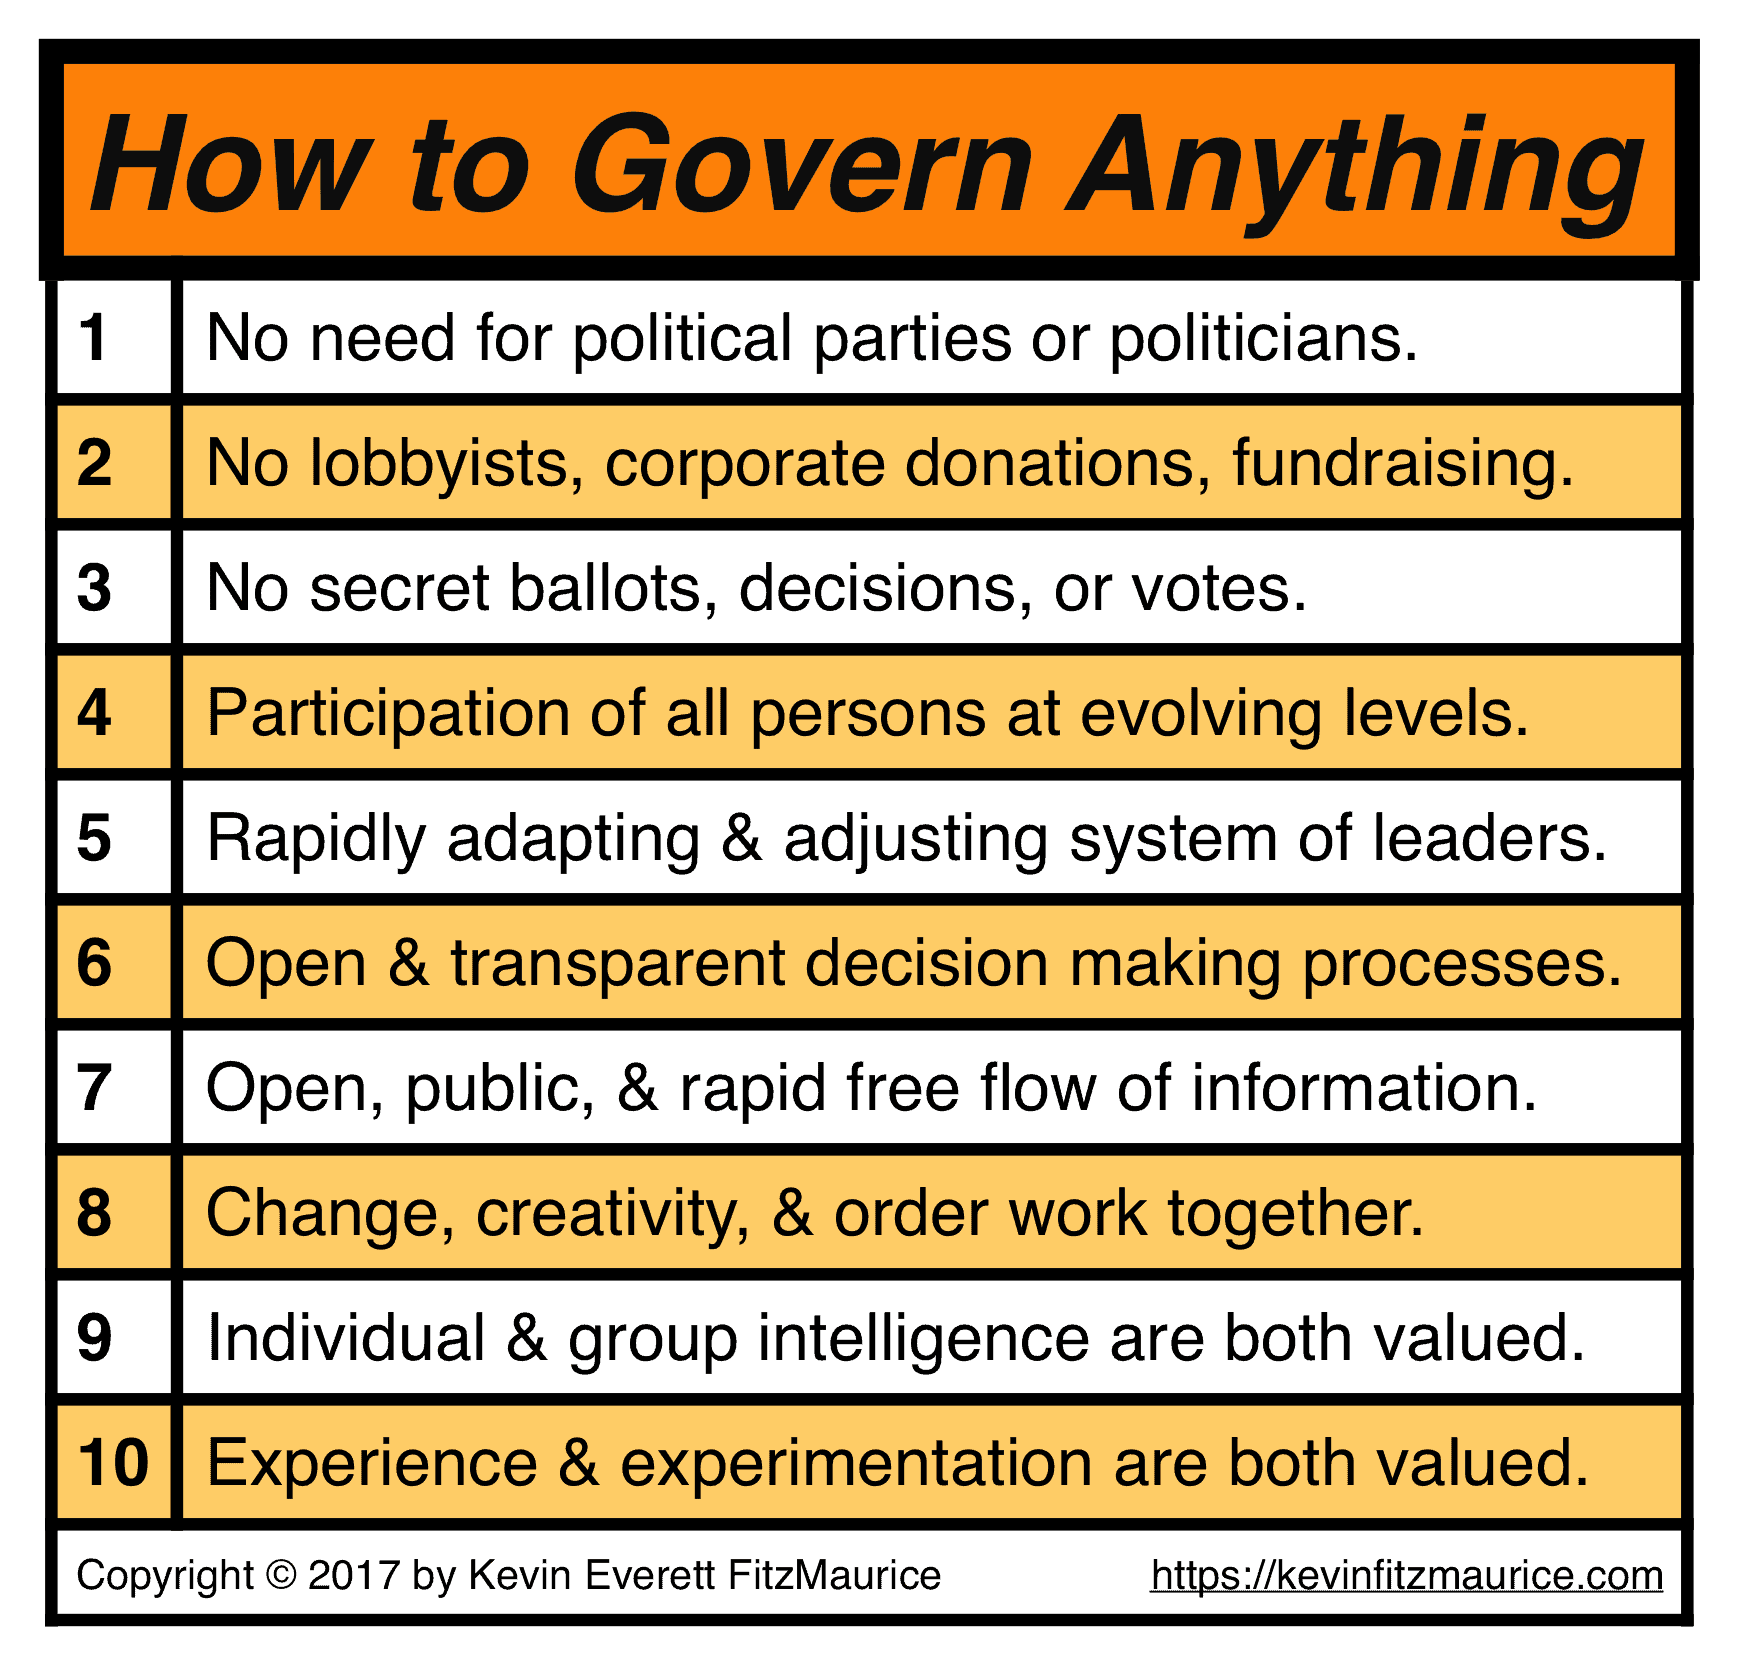 How to Govern Anything Features